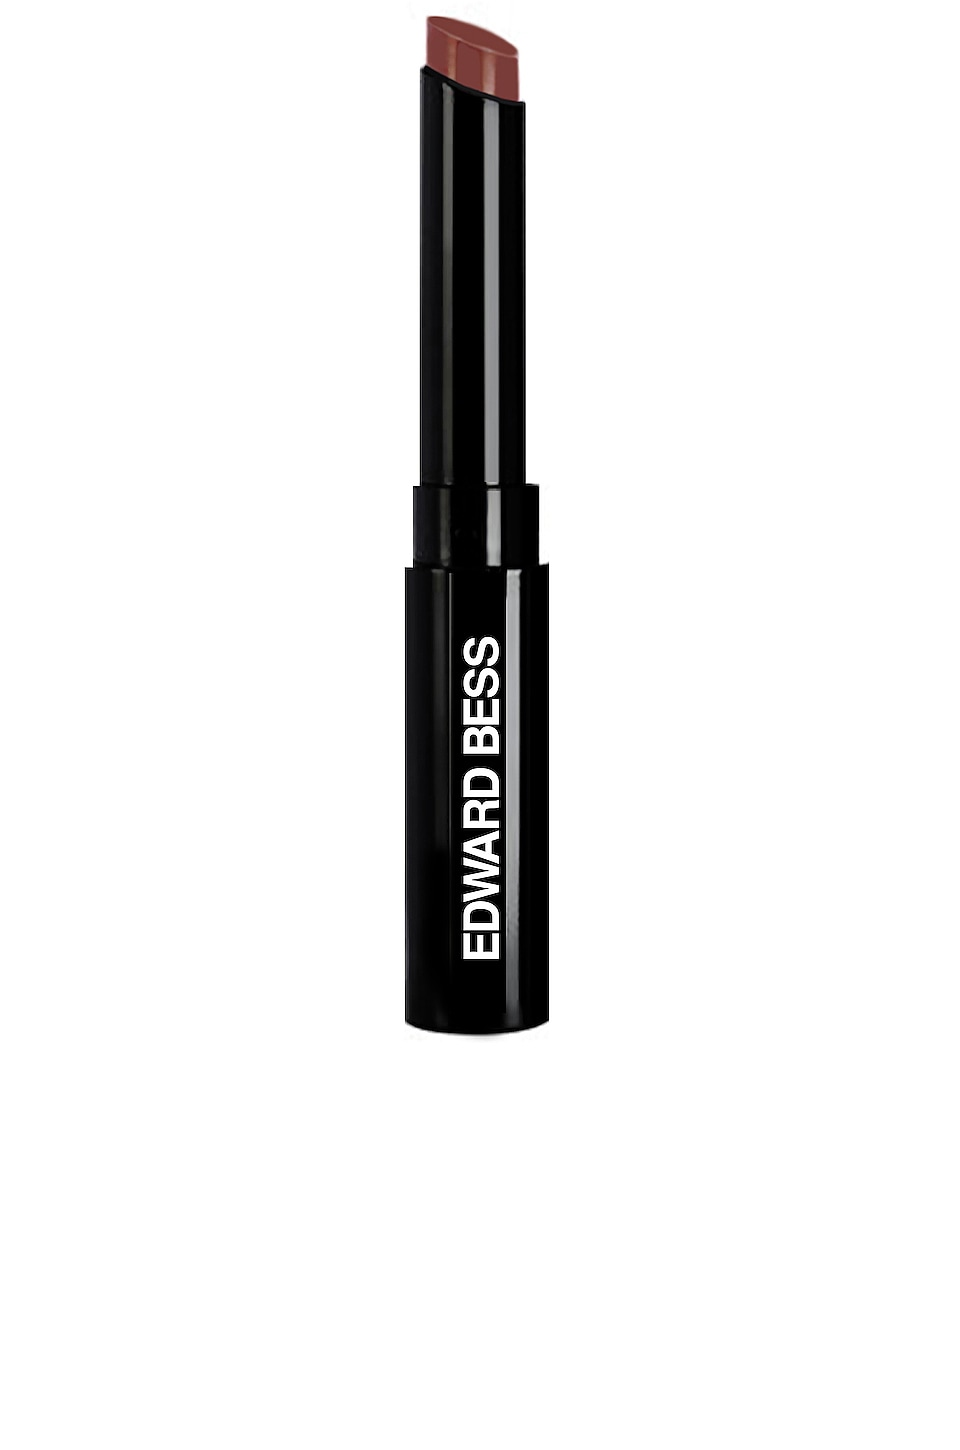 Edward Bess Classic Beauty Lustrous Lip Color in Satin